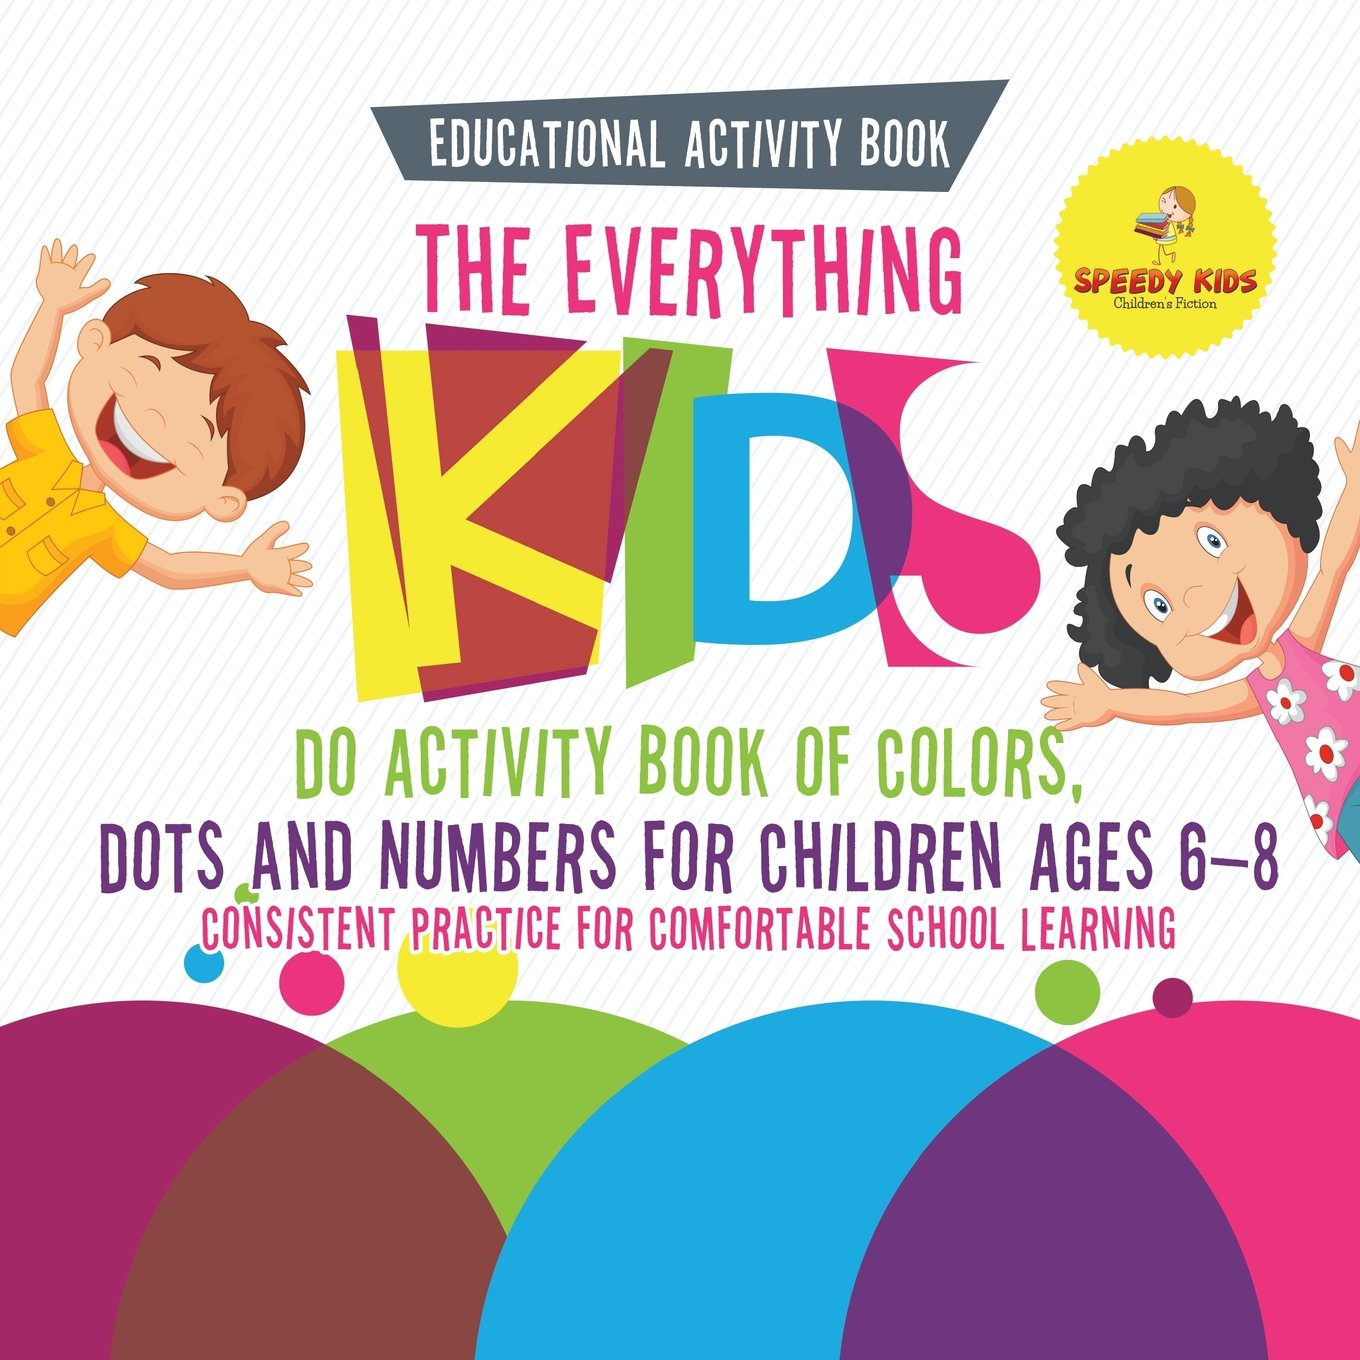 Educational Activity Book. The Everything Kids Do Activity Book of Colors, Dots and Numbers for Children Ages 6-8. Consistent Practice for Comfortable School Learning ebook